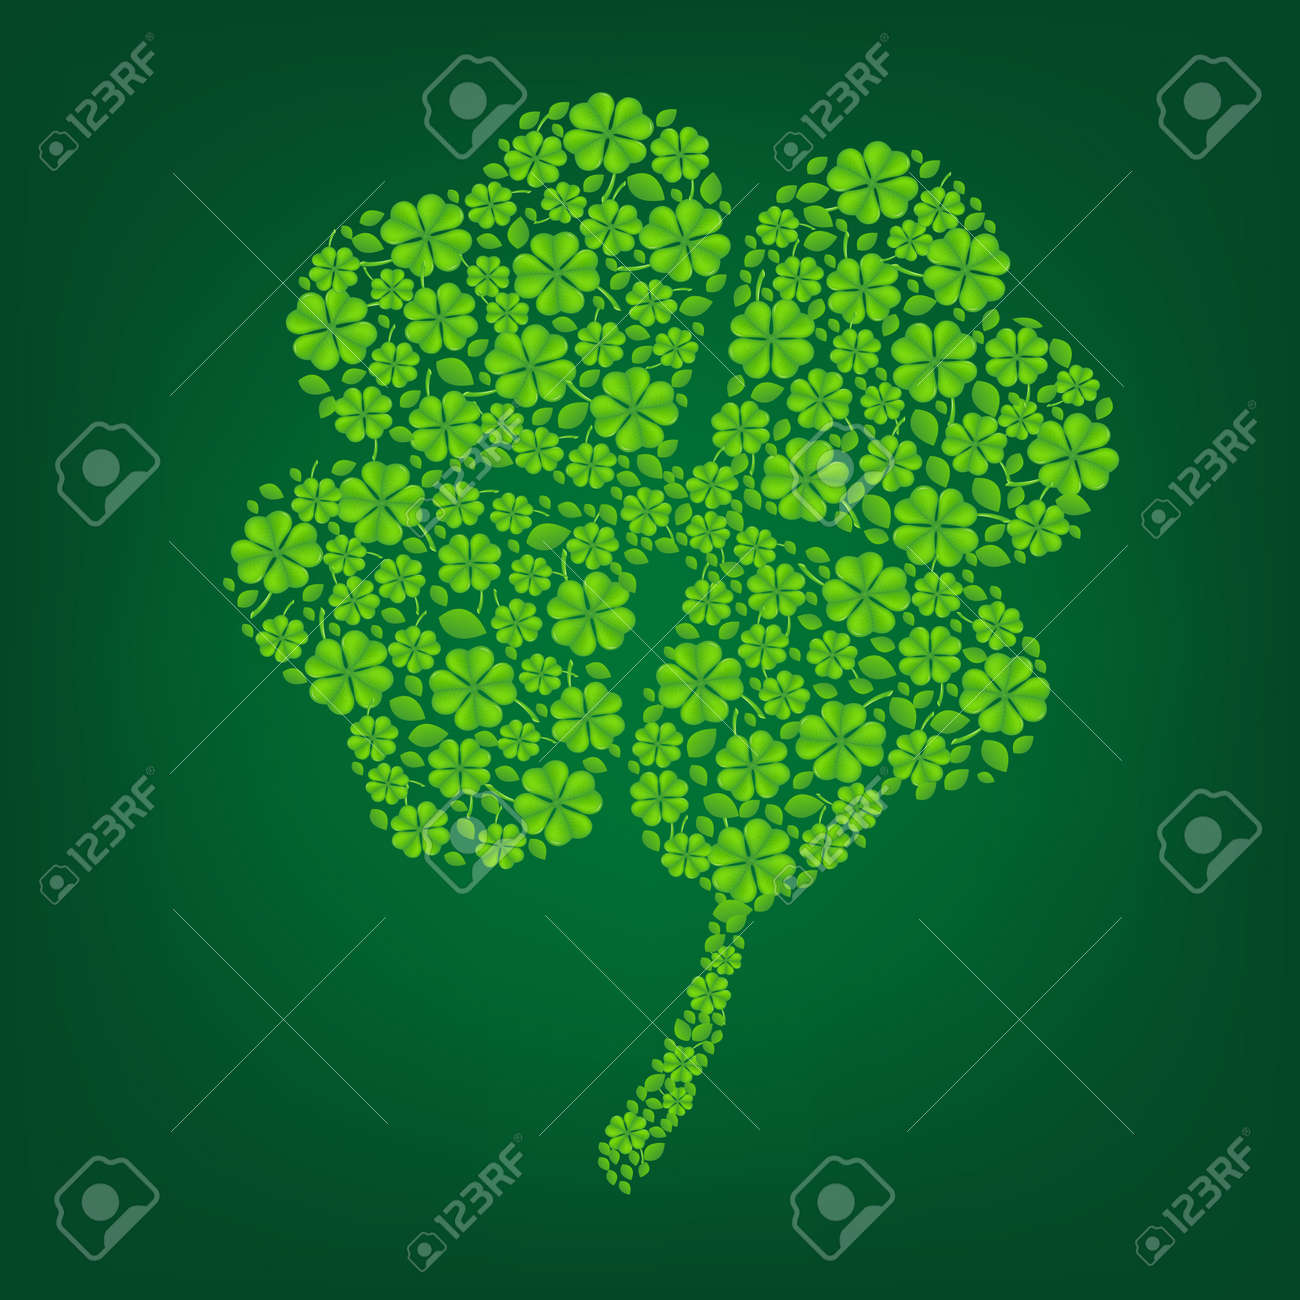 Green Clover With Gradient Mesh, Vector Illustration Stock Vector - 17779075